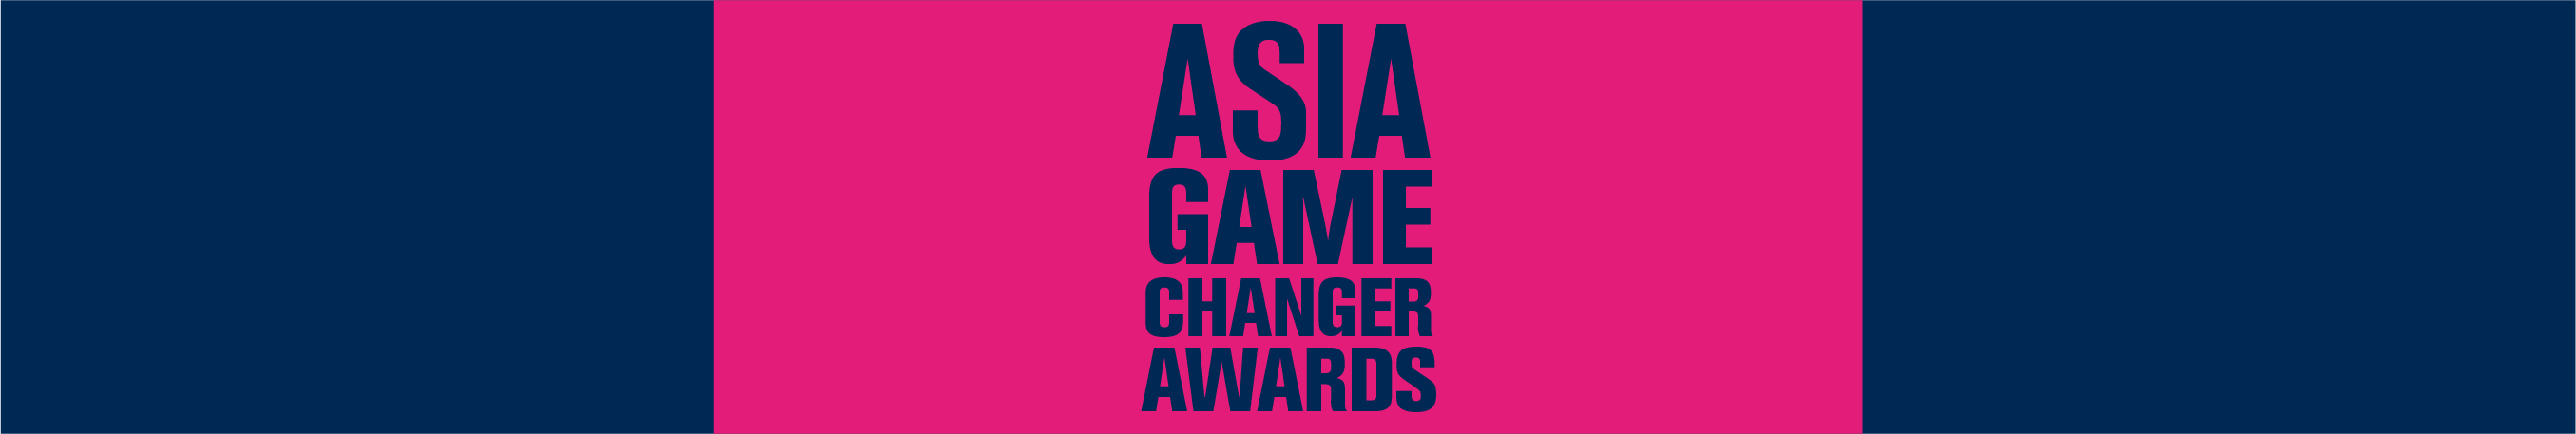 Asia Game Changer Awards by Asia Society